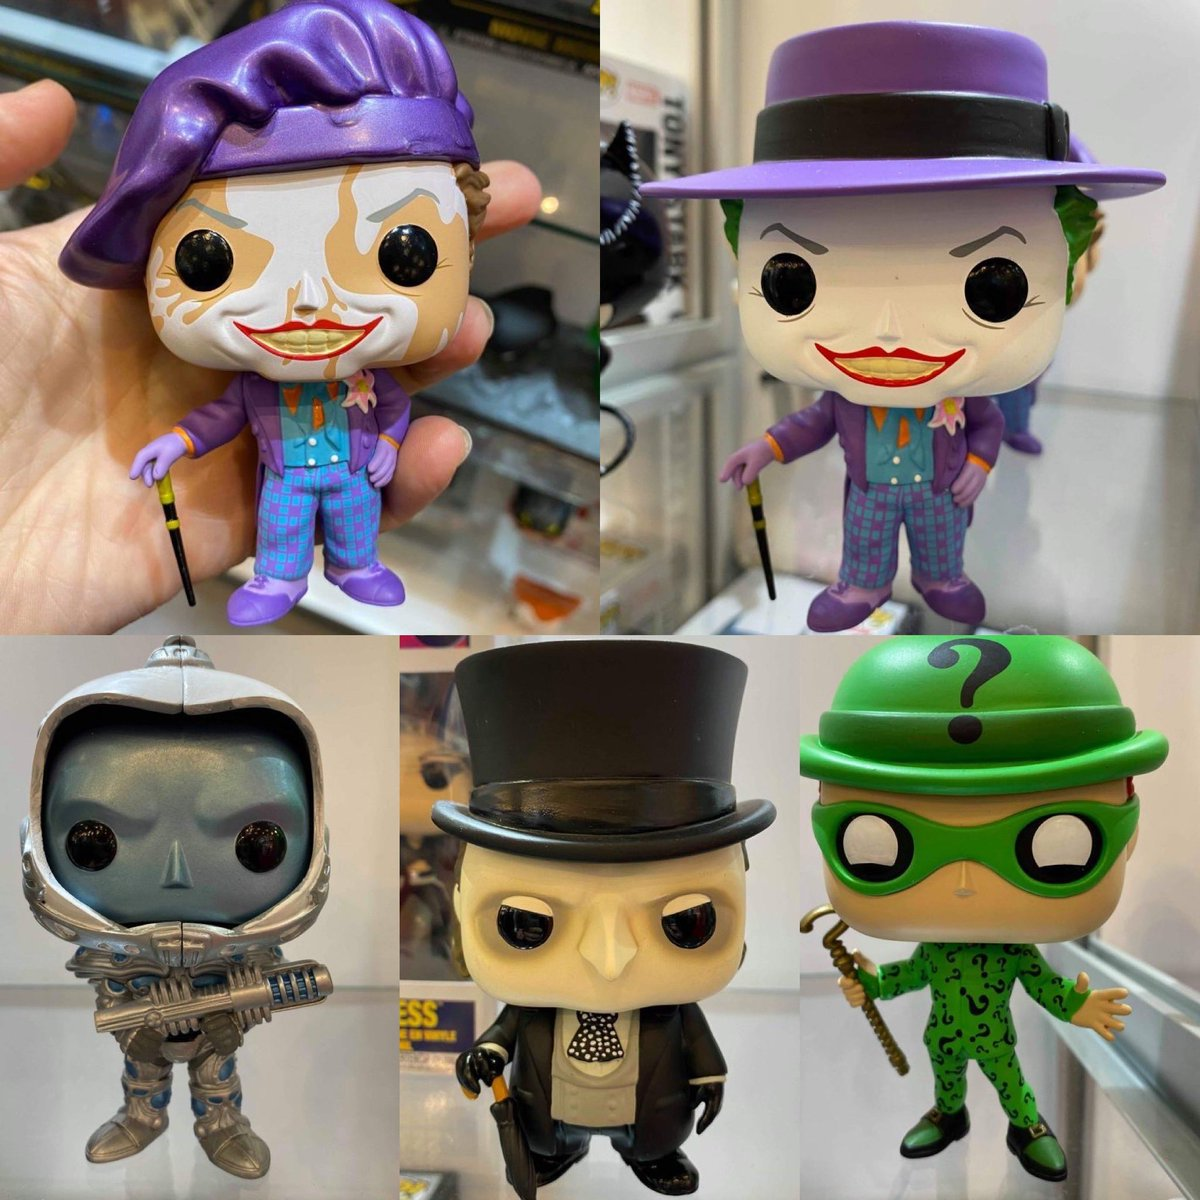 Closer look at more the DC Pops including the Joker chase! . Credit @doubleboxedtoys<br>http://pic.twitter.com/2664oYD6w2